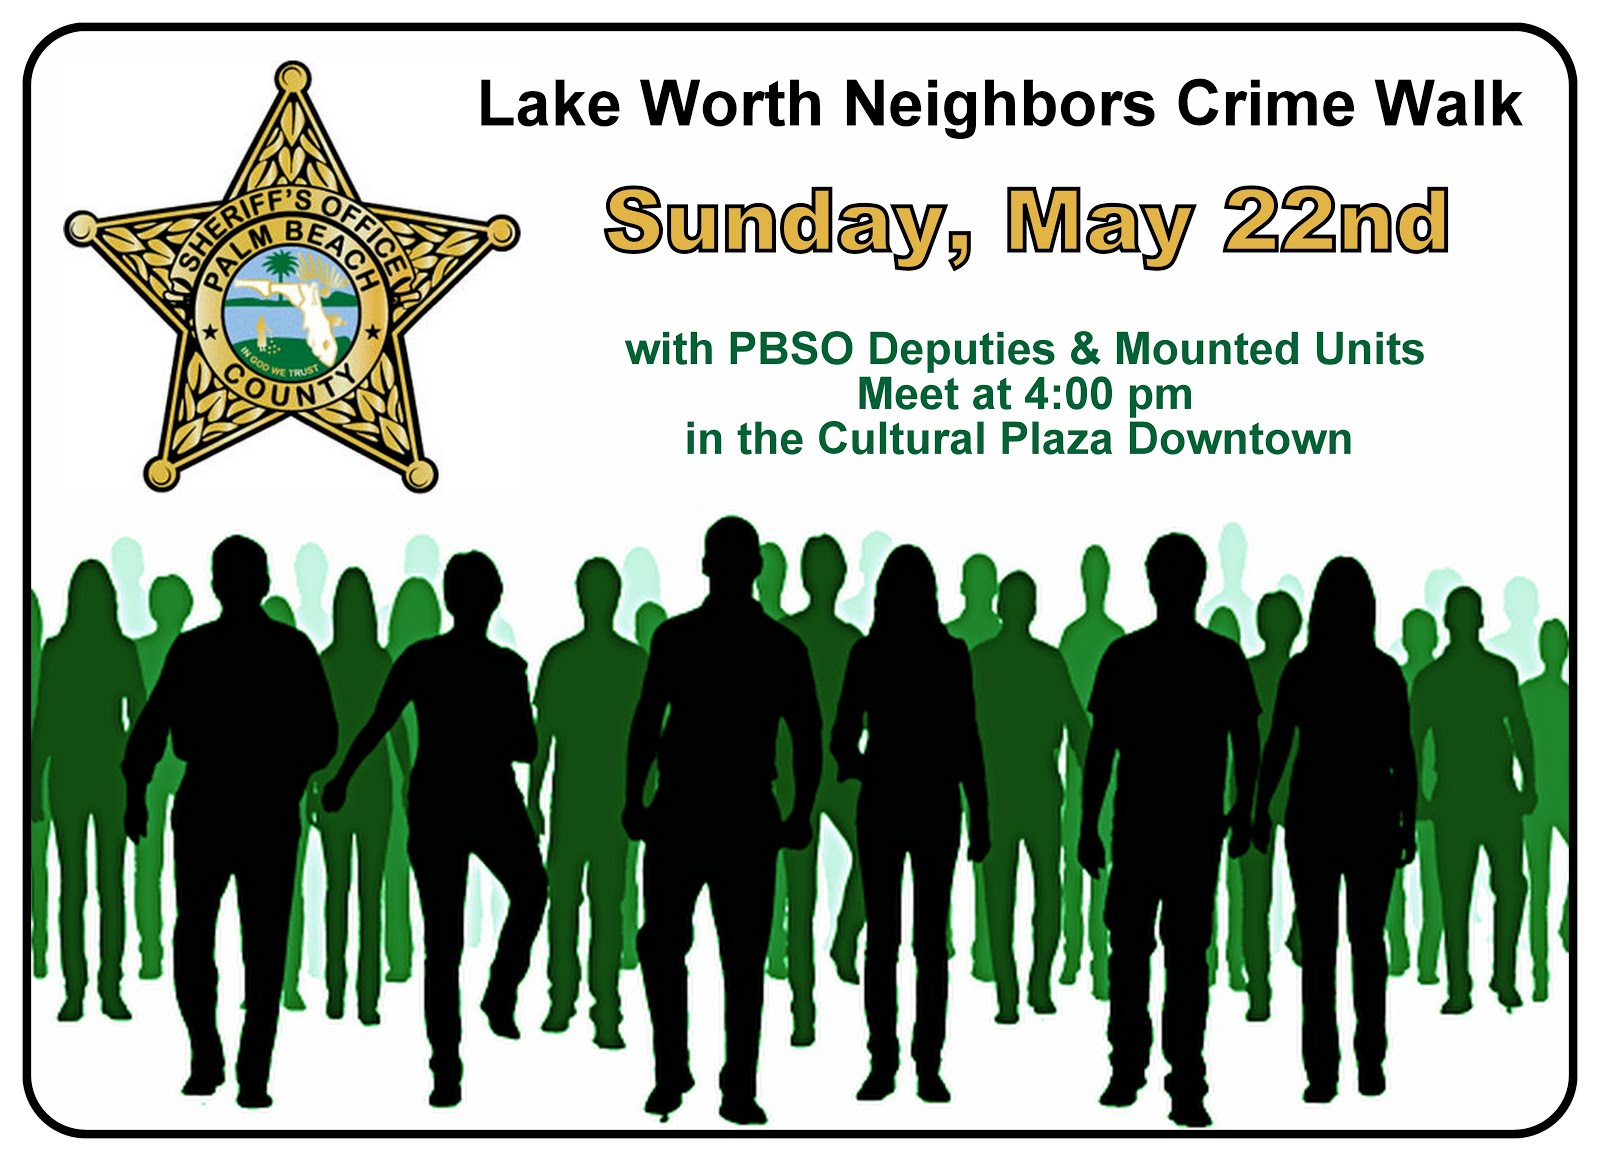 Save the Date: Upcoming Crime Walk later this month